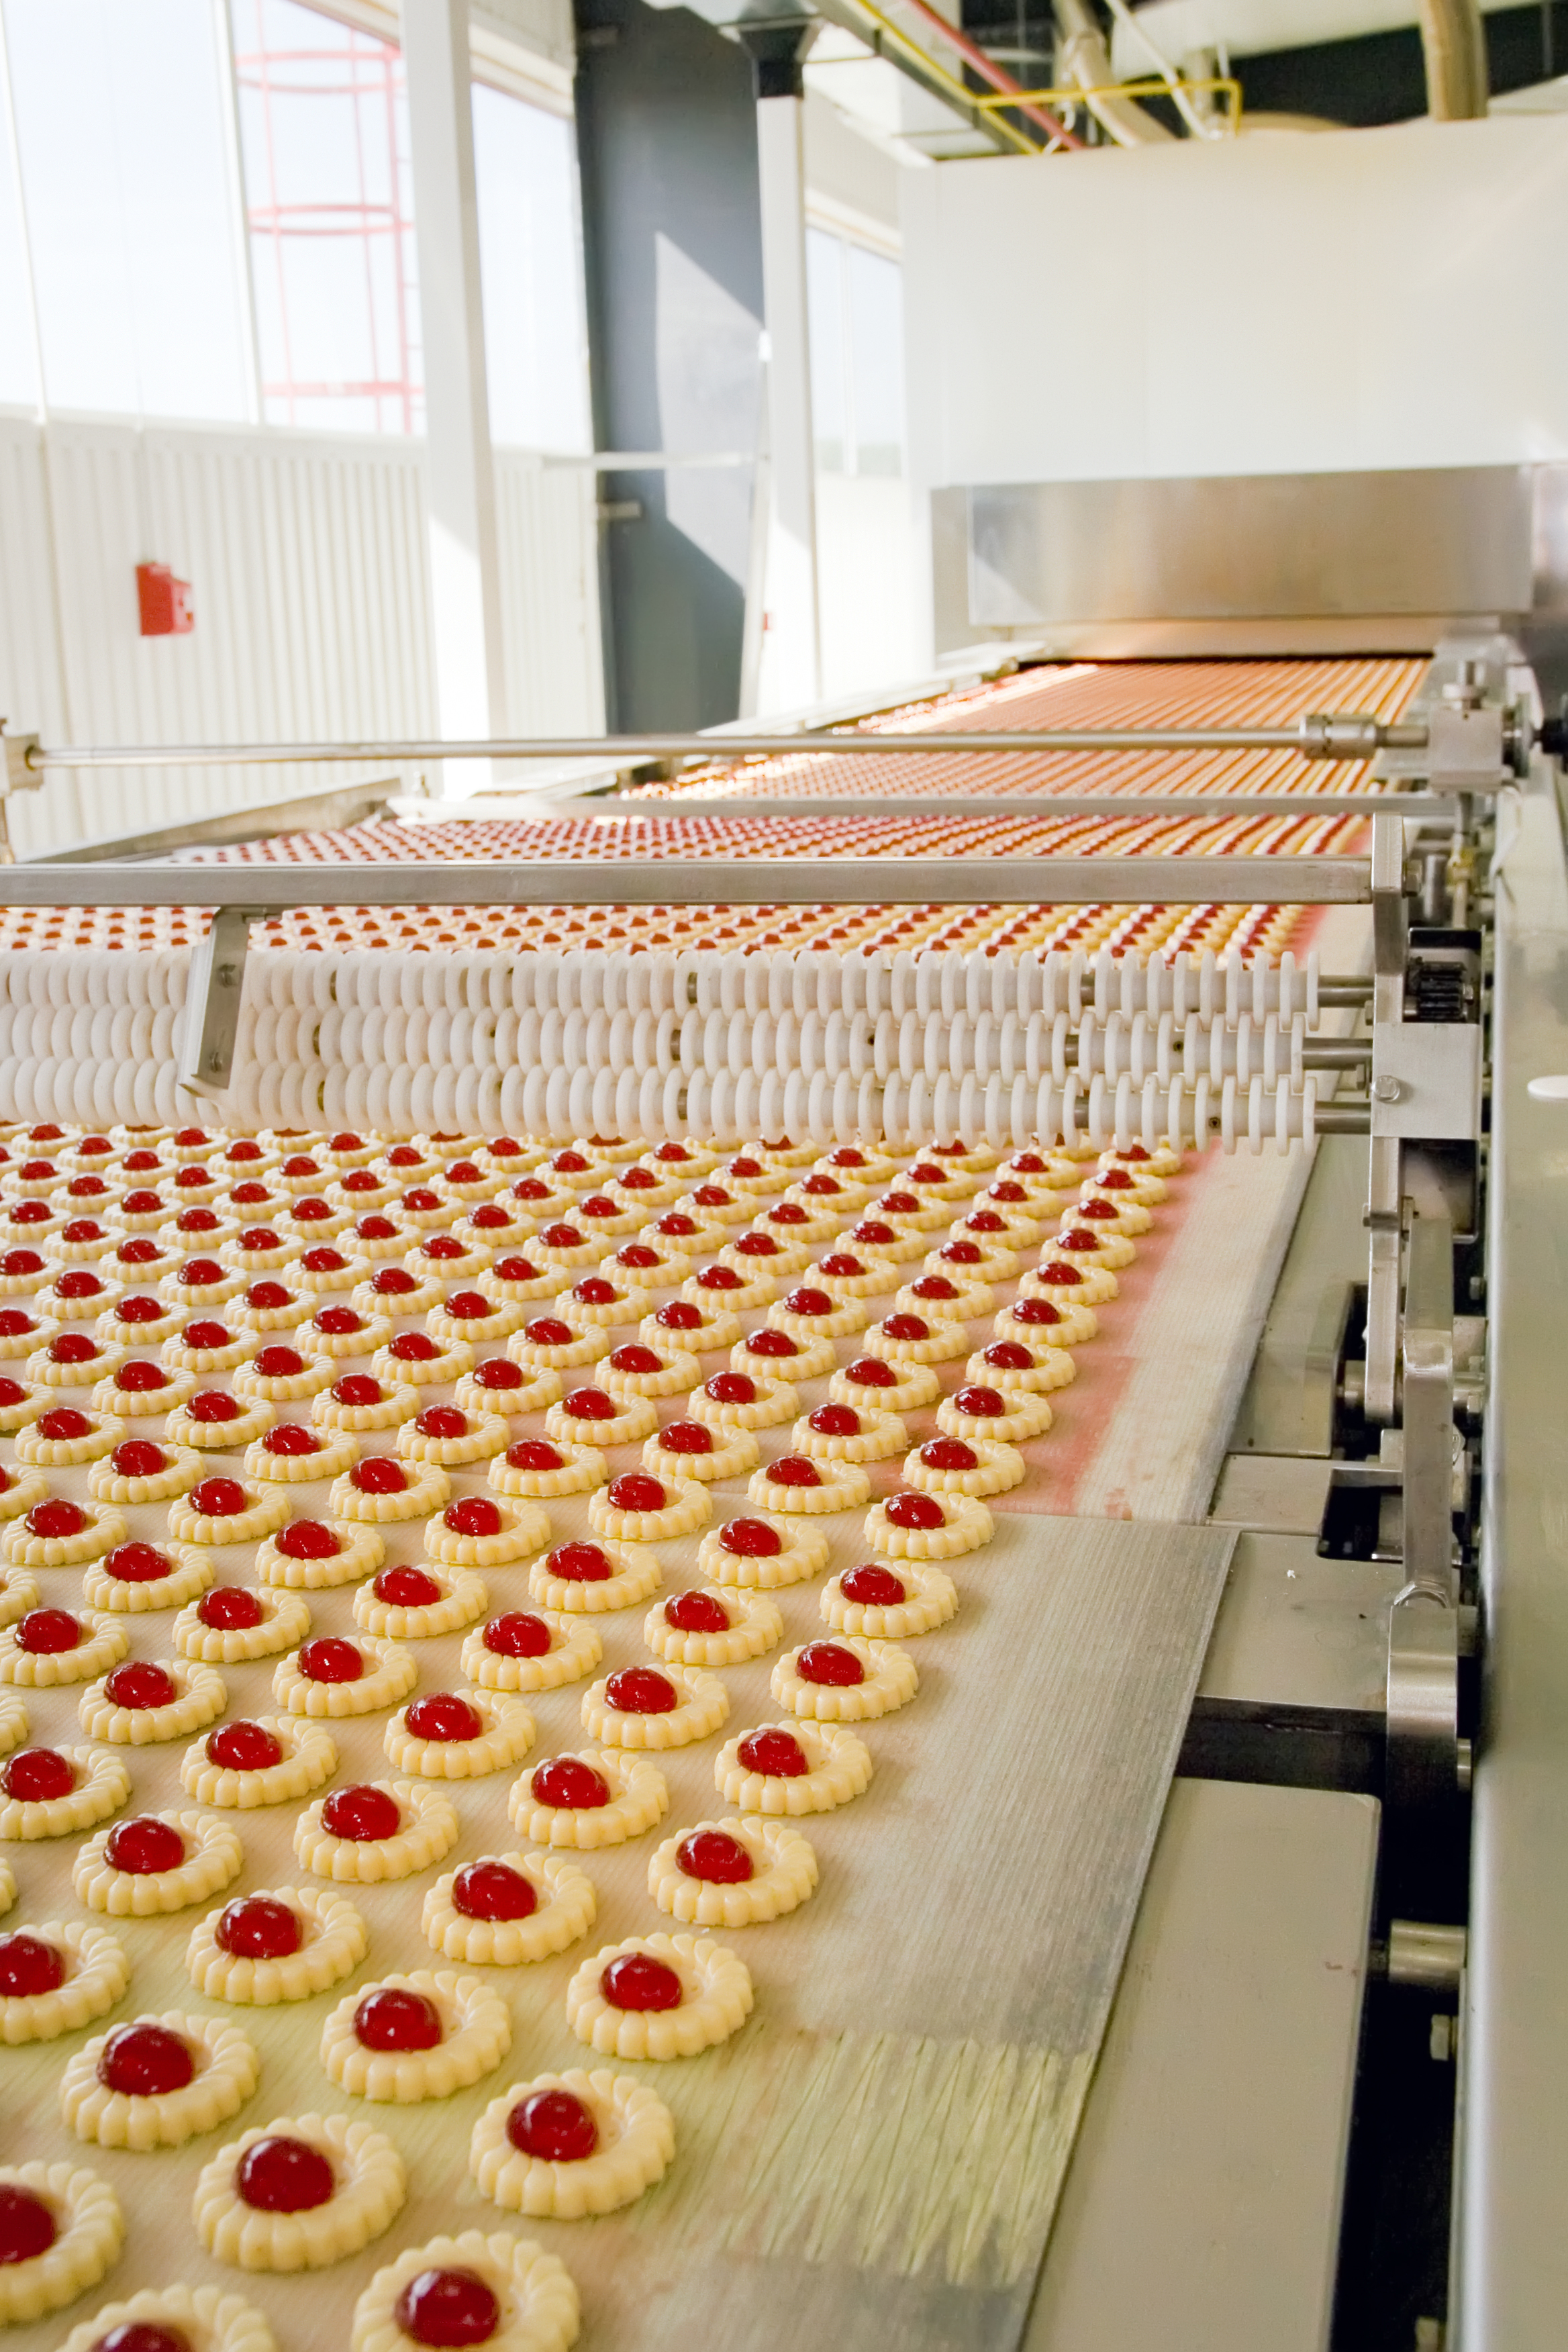 bigstock-production-cookie-in-factory-26348057.jpg